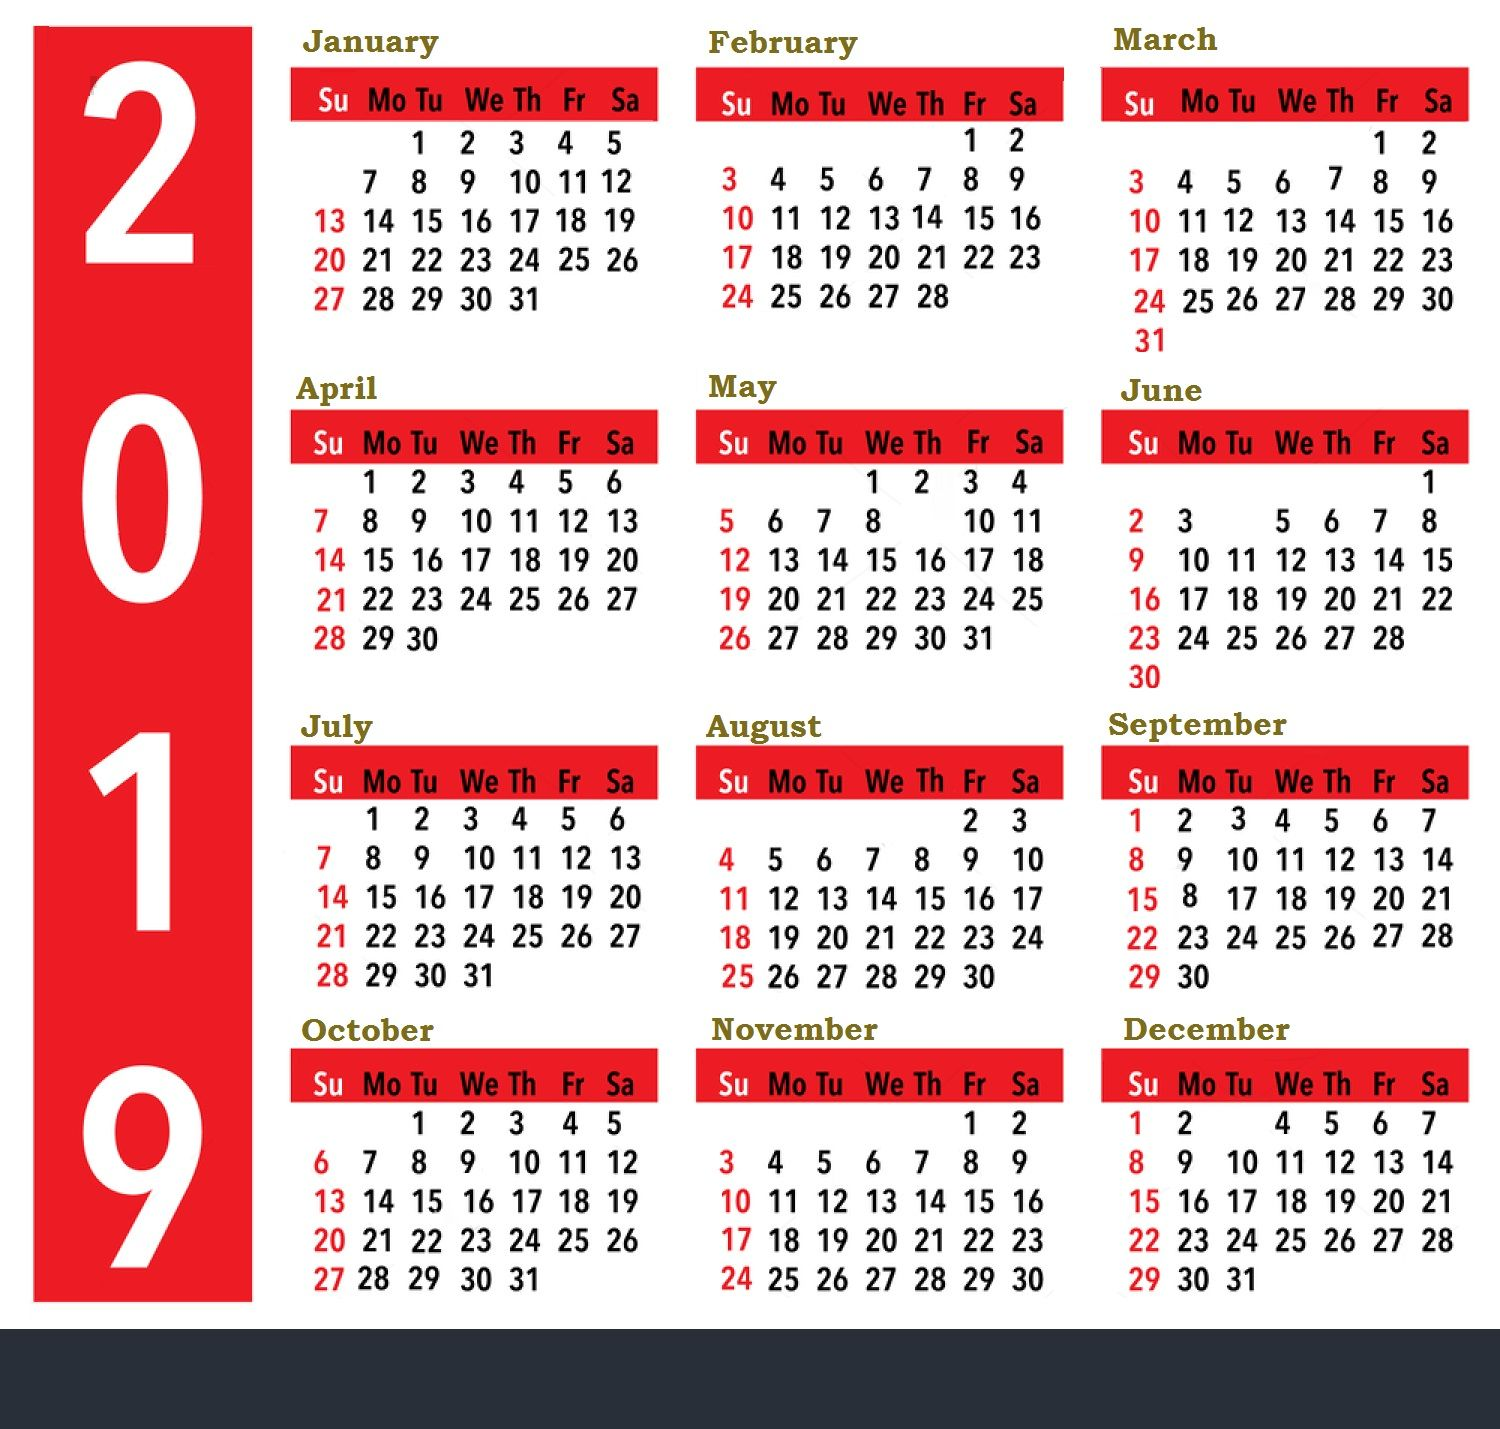 Calendar For Year 2019 United States With Holidays All Important Dates And